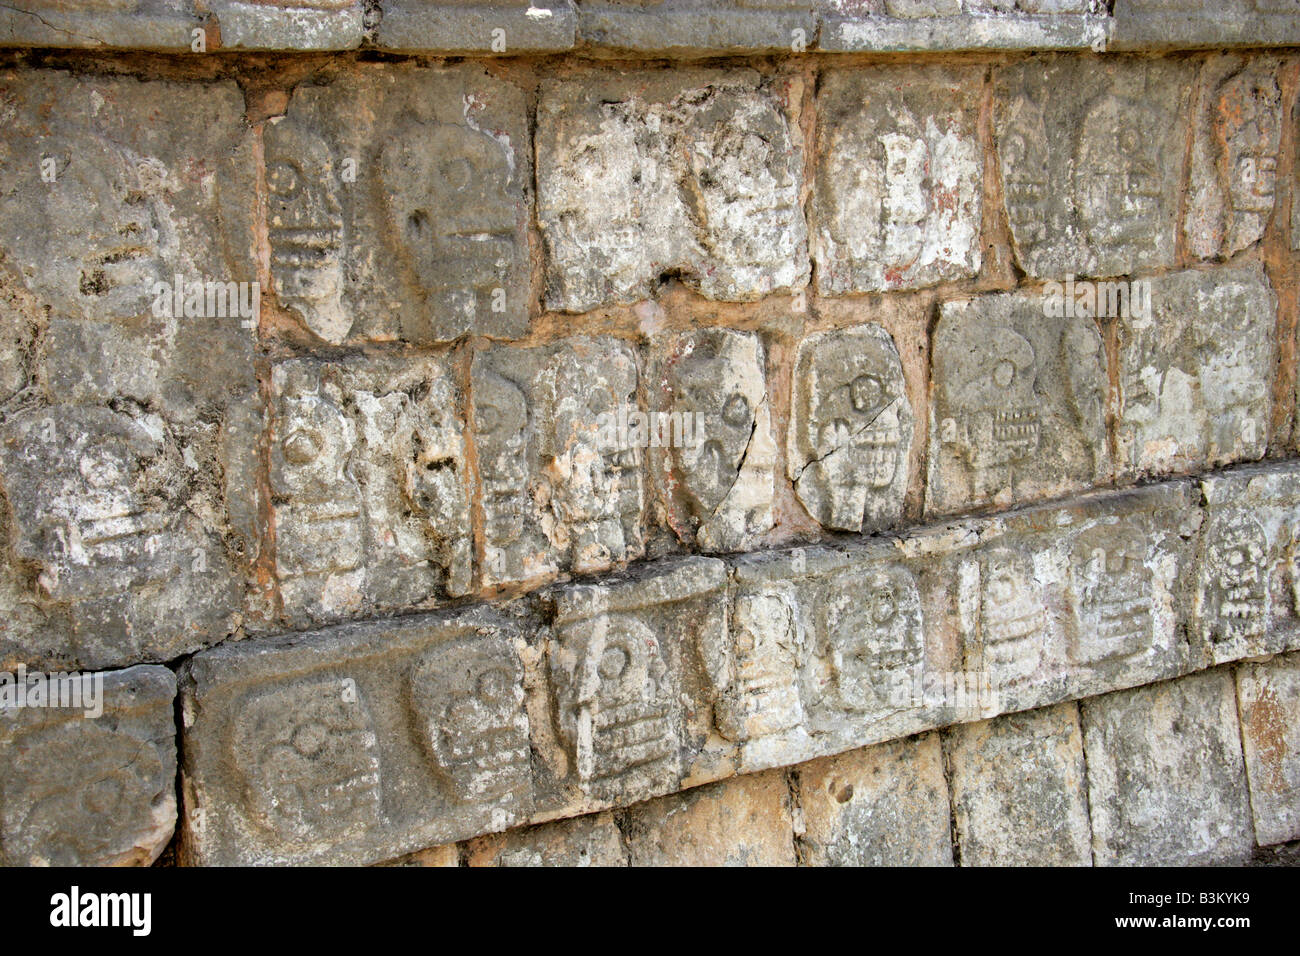 Detail from the Tzompantli Platform of the Skulls, Chichen Itza Archeological Site, Yucatan Peninsular, Mexico Stock Photo